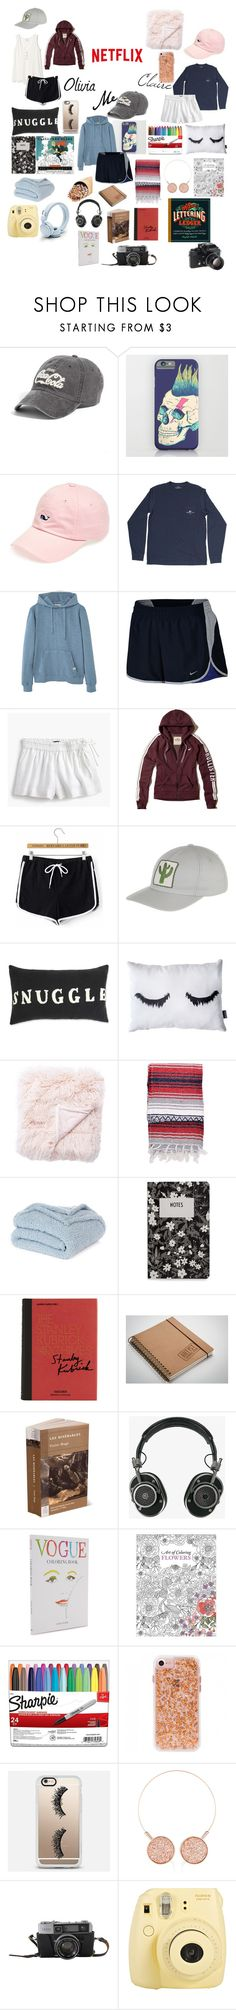 """""""Vacation!"""" by avengersfreak ❤ liked on Polyvore featuring American Needle, Vineyard Vines, MANGO MAN, NIKE, J.Crew, Hollister Co., Mollusk, Jaipur, Nordstrom Rack and Design Letters"""